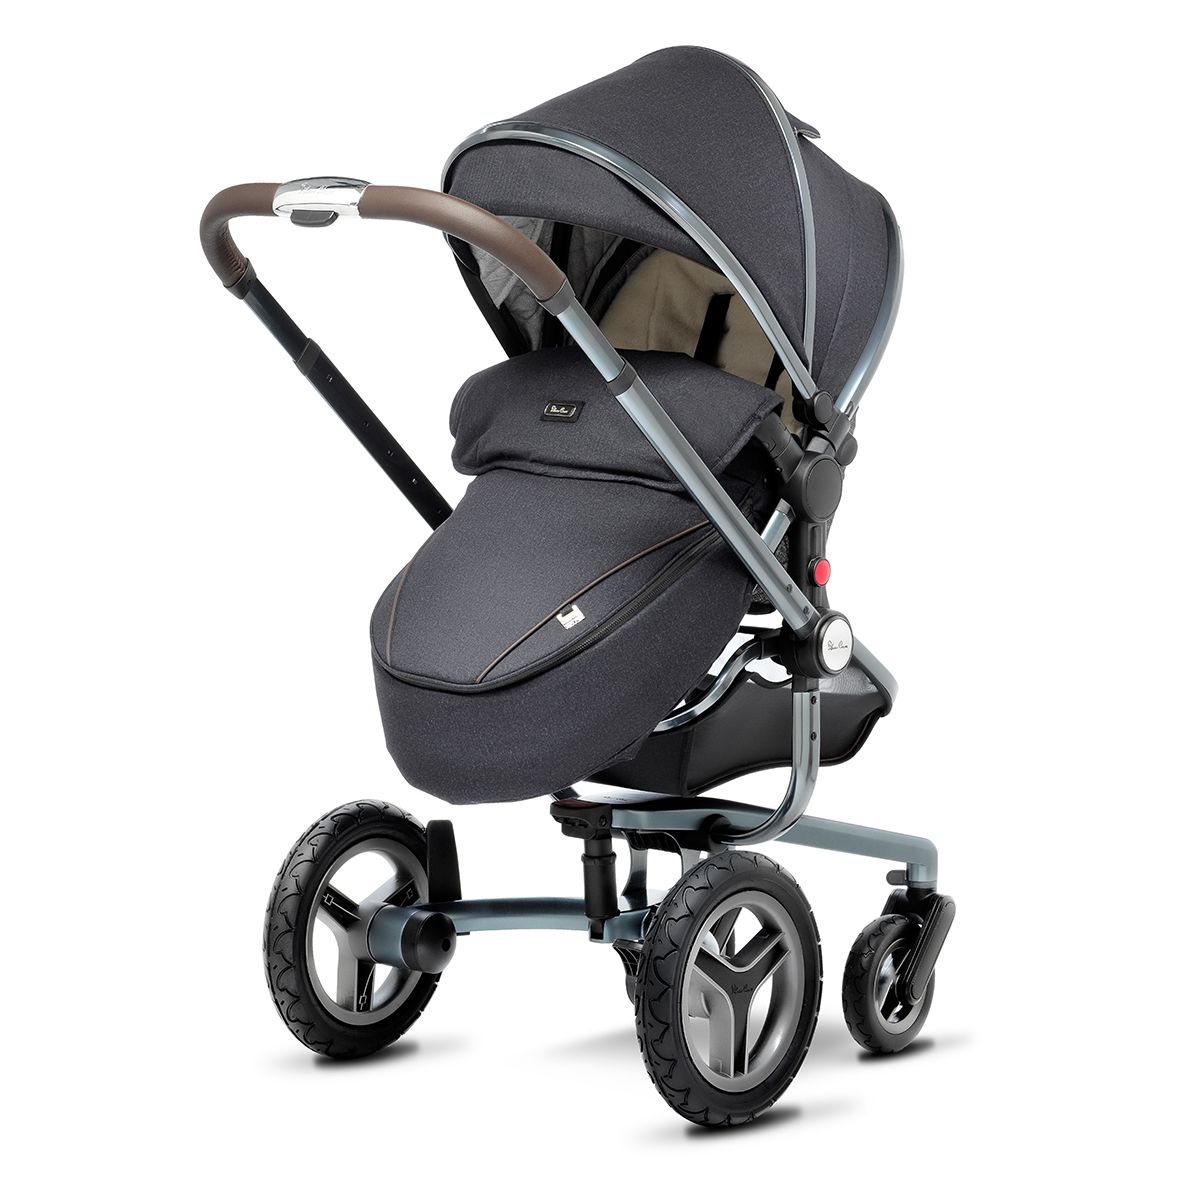 Buggy Silver Cross Henley Limited Edition De Boomhut Pushchair Prams And Pushchairs Travel Systems For Baby